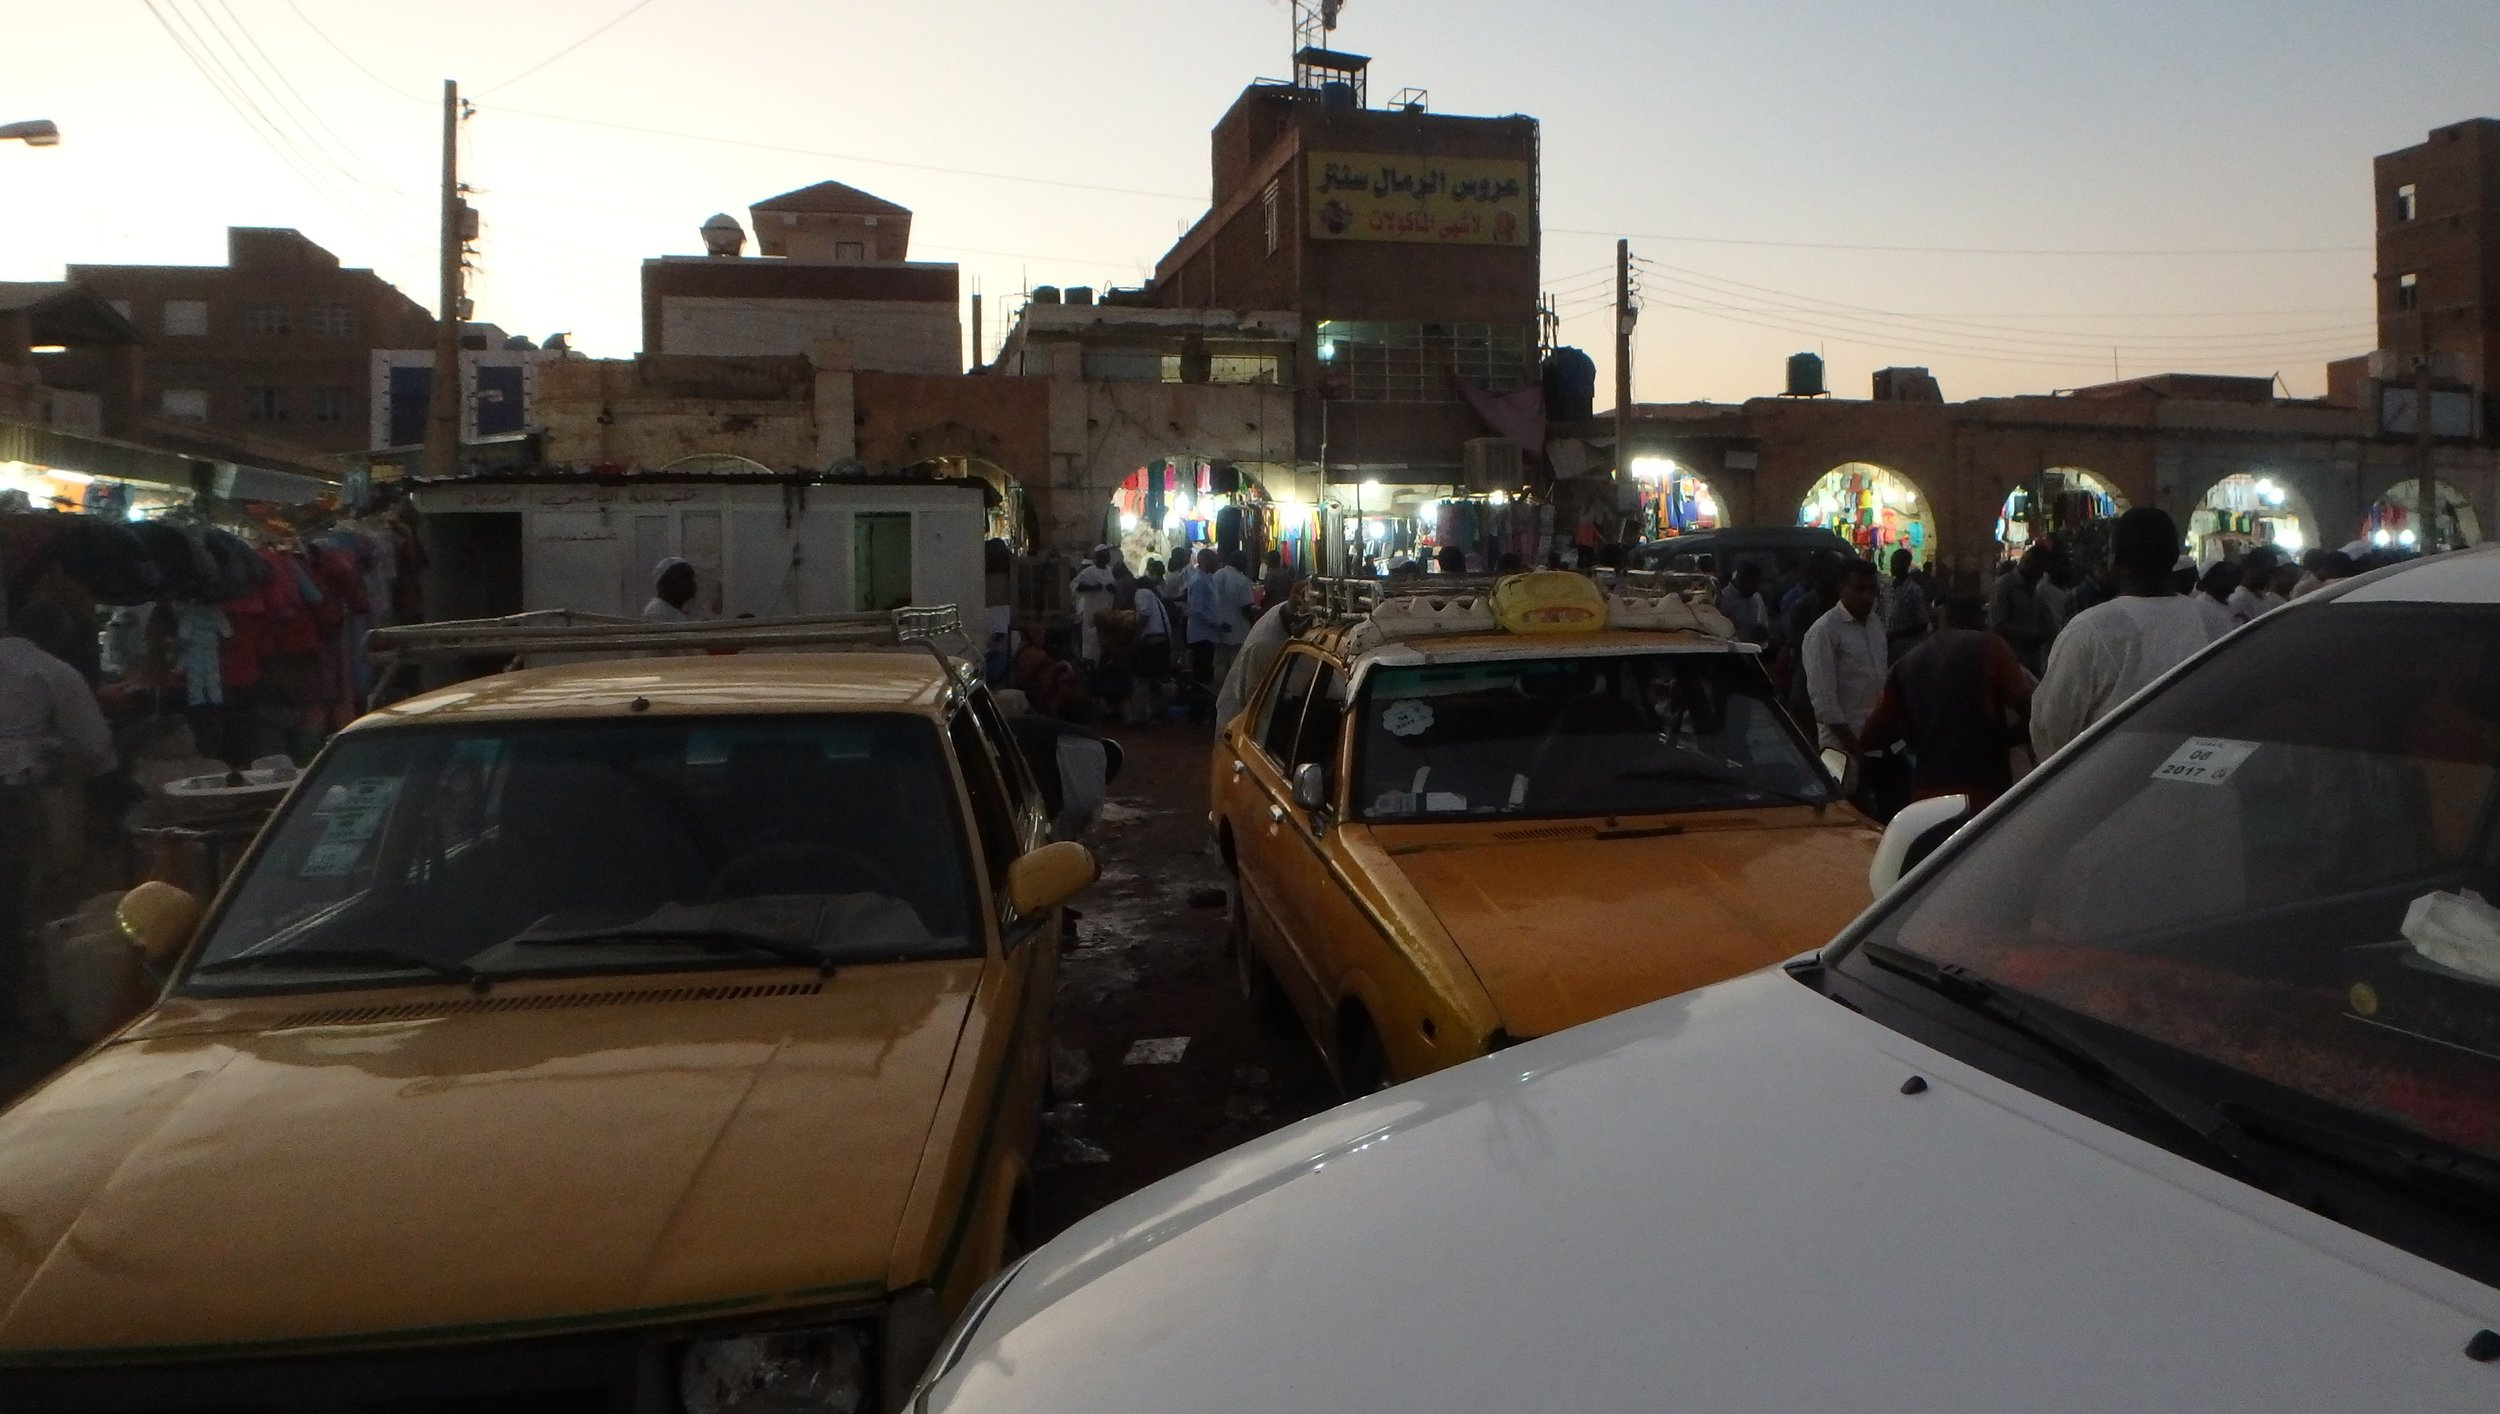 Welcome to Khartoum, thriving and throbbing hub of Sudan.   Parking lot at the entrance to Souq Omdurman, one of the largest bazaars in northern Africa.